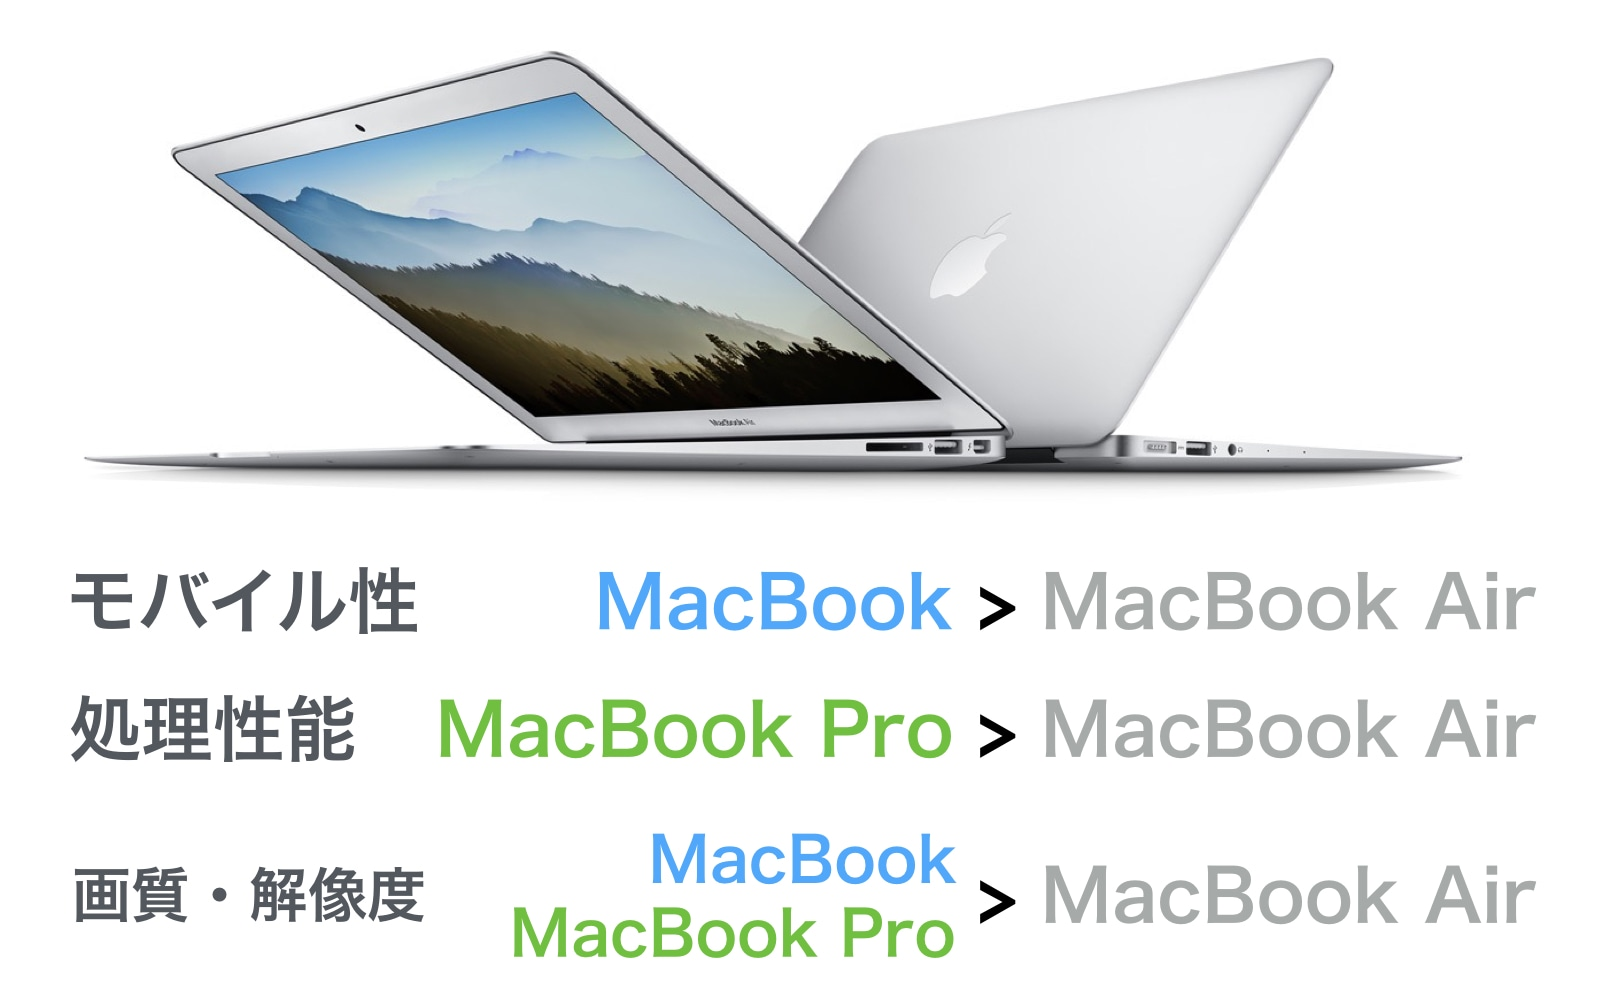 MacBook、MacBook ProとMacBook Airを比較 Airのデメリット